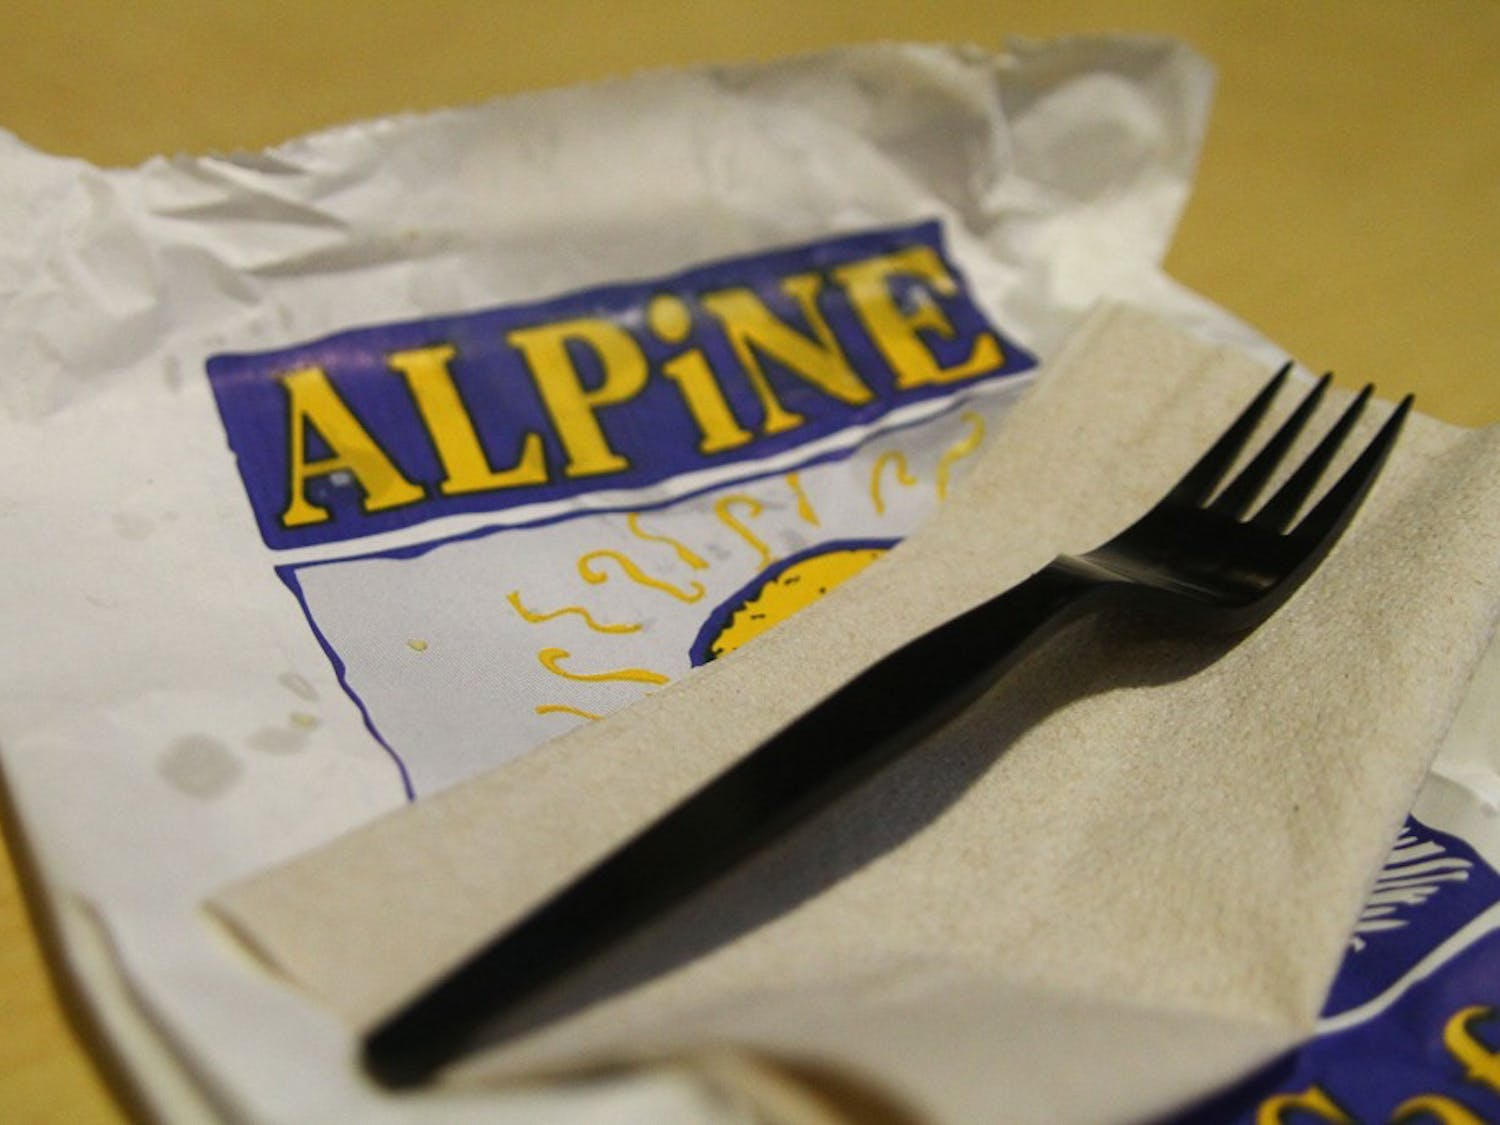 Alpine Bagel Cafe charges 20 cents for a utensil when purchased without food.